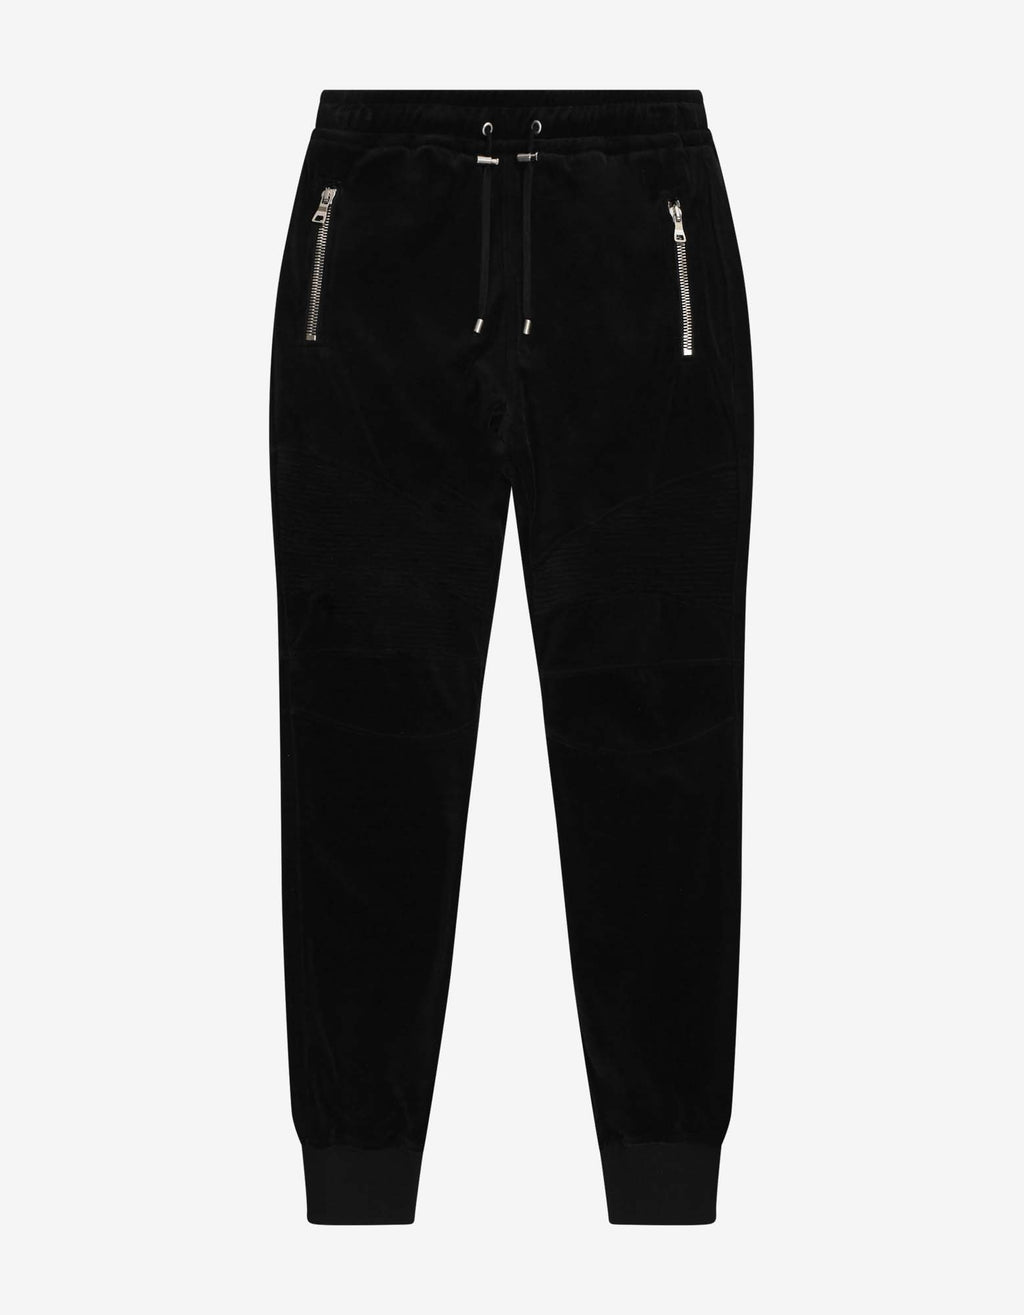 Black Velvet Biker Sweat Pants -